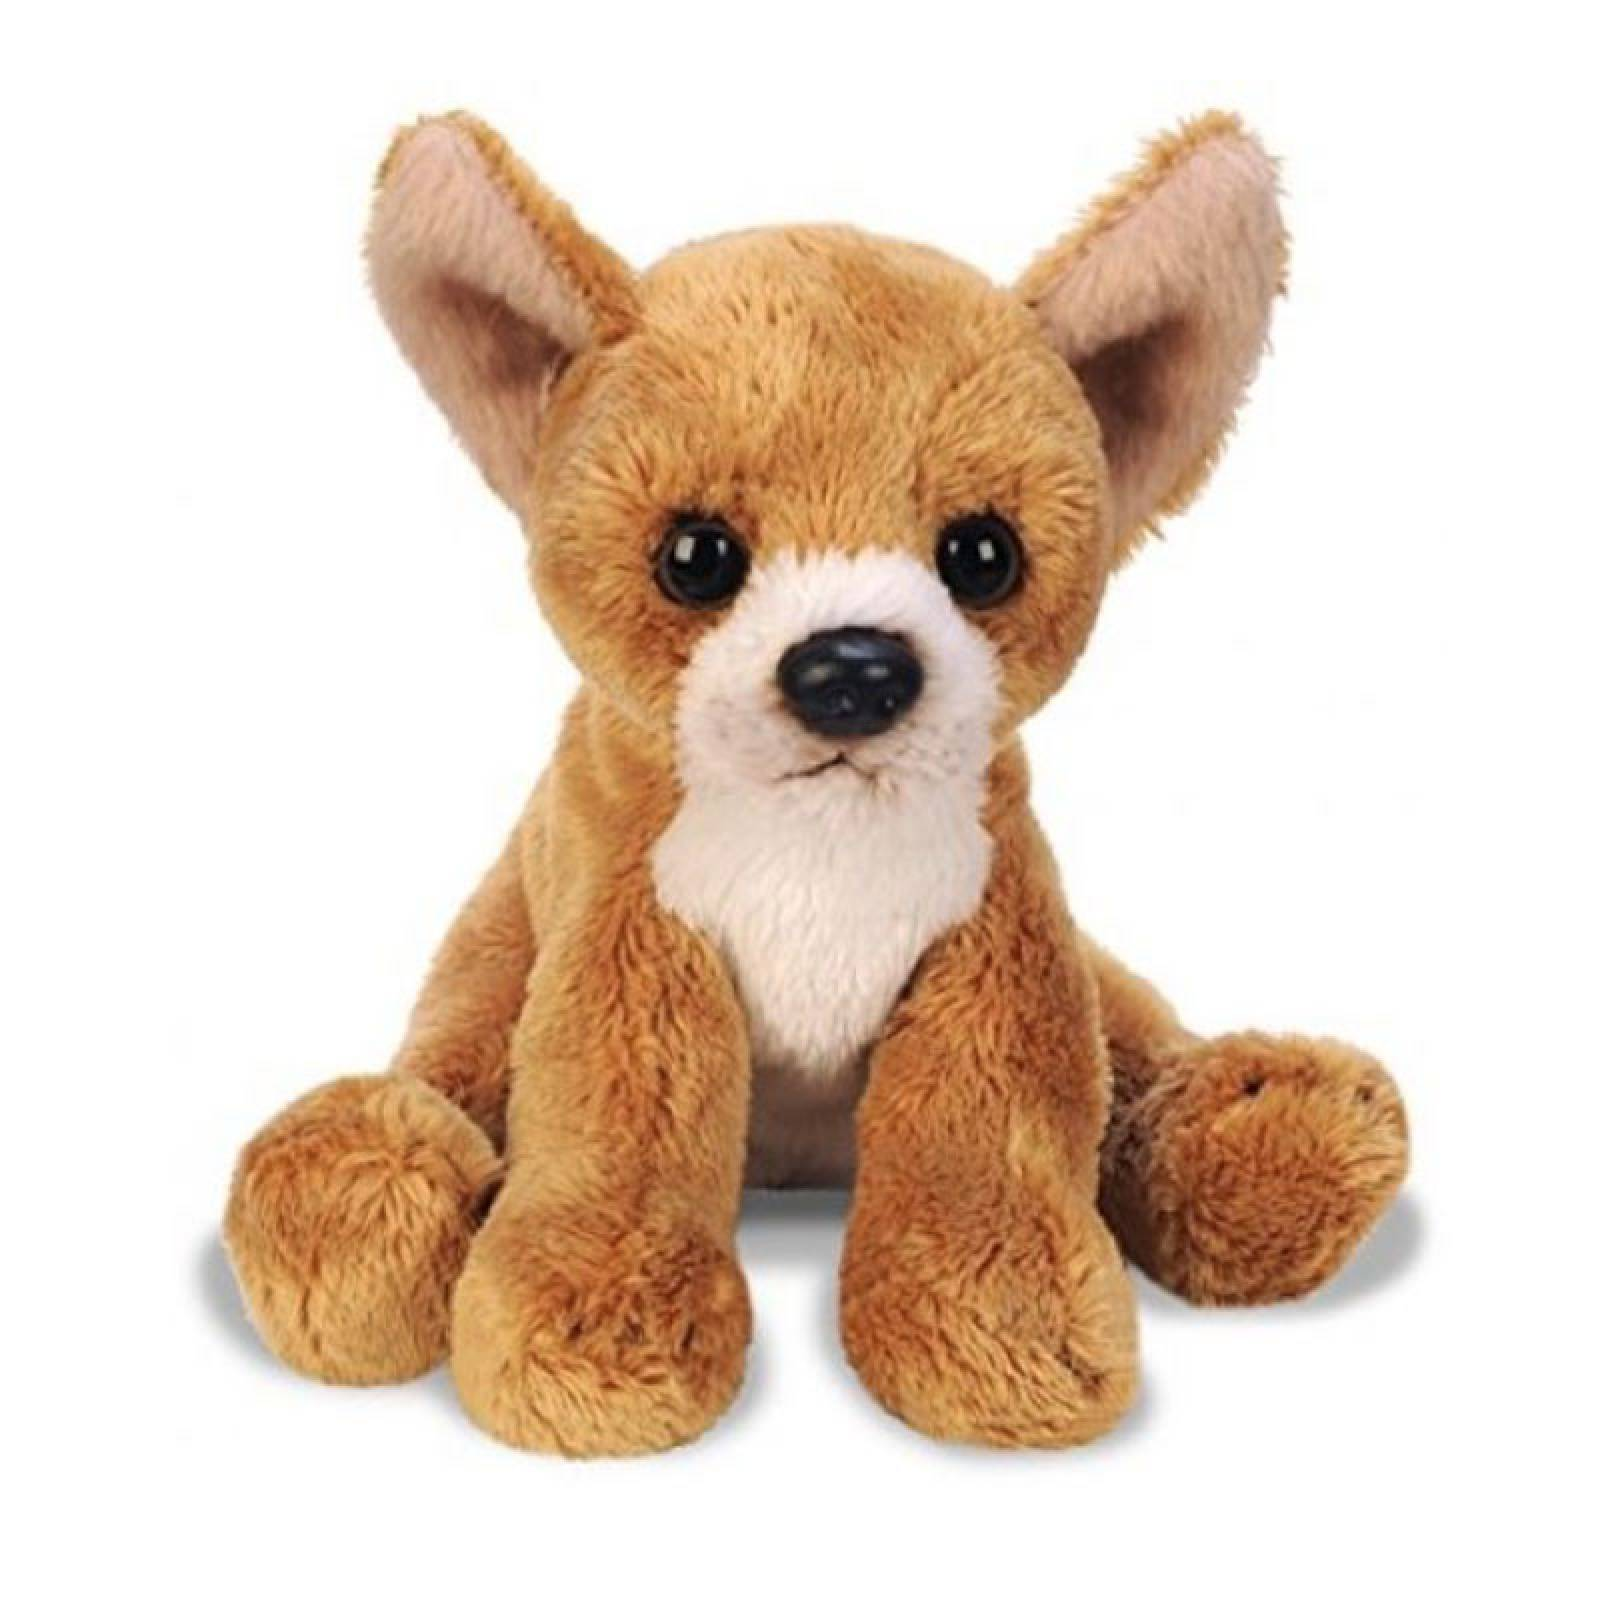 Small Sitting Chihuahua Dog Soft Toy 12.5cm